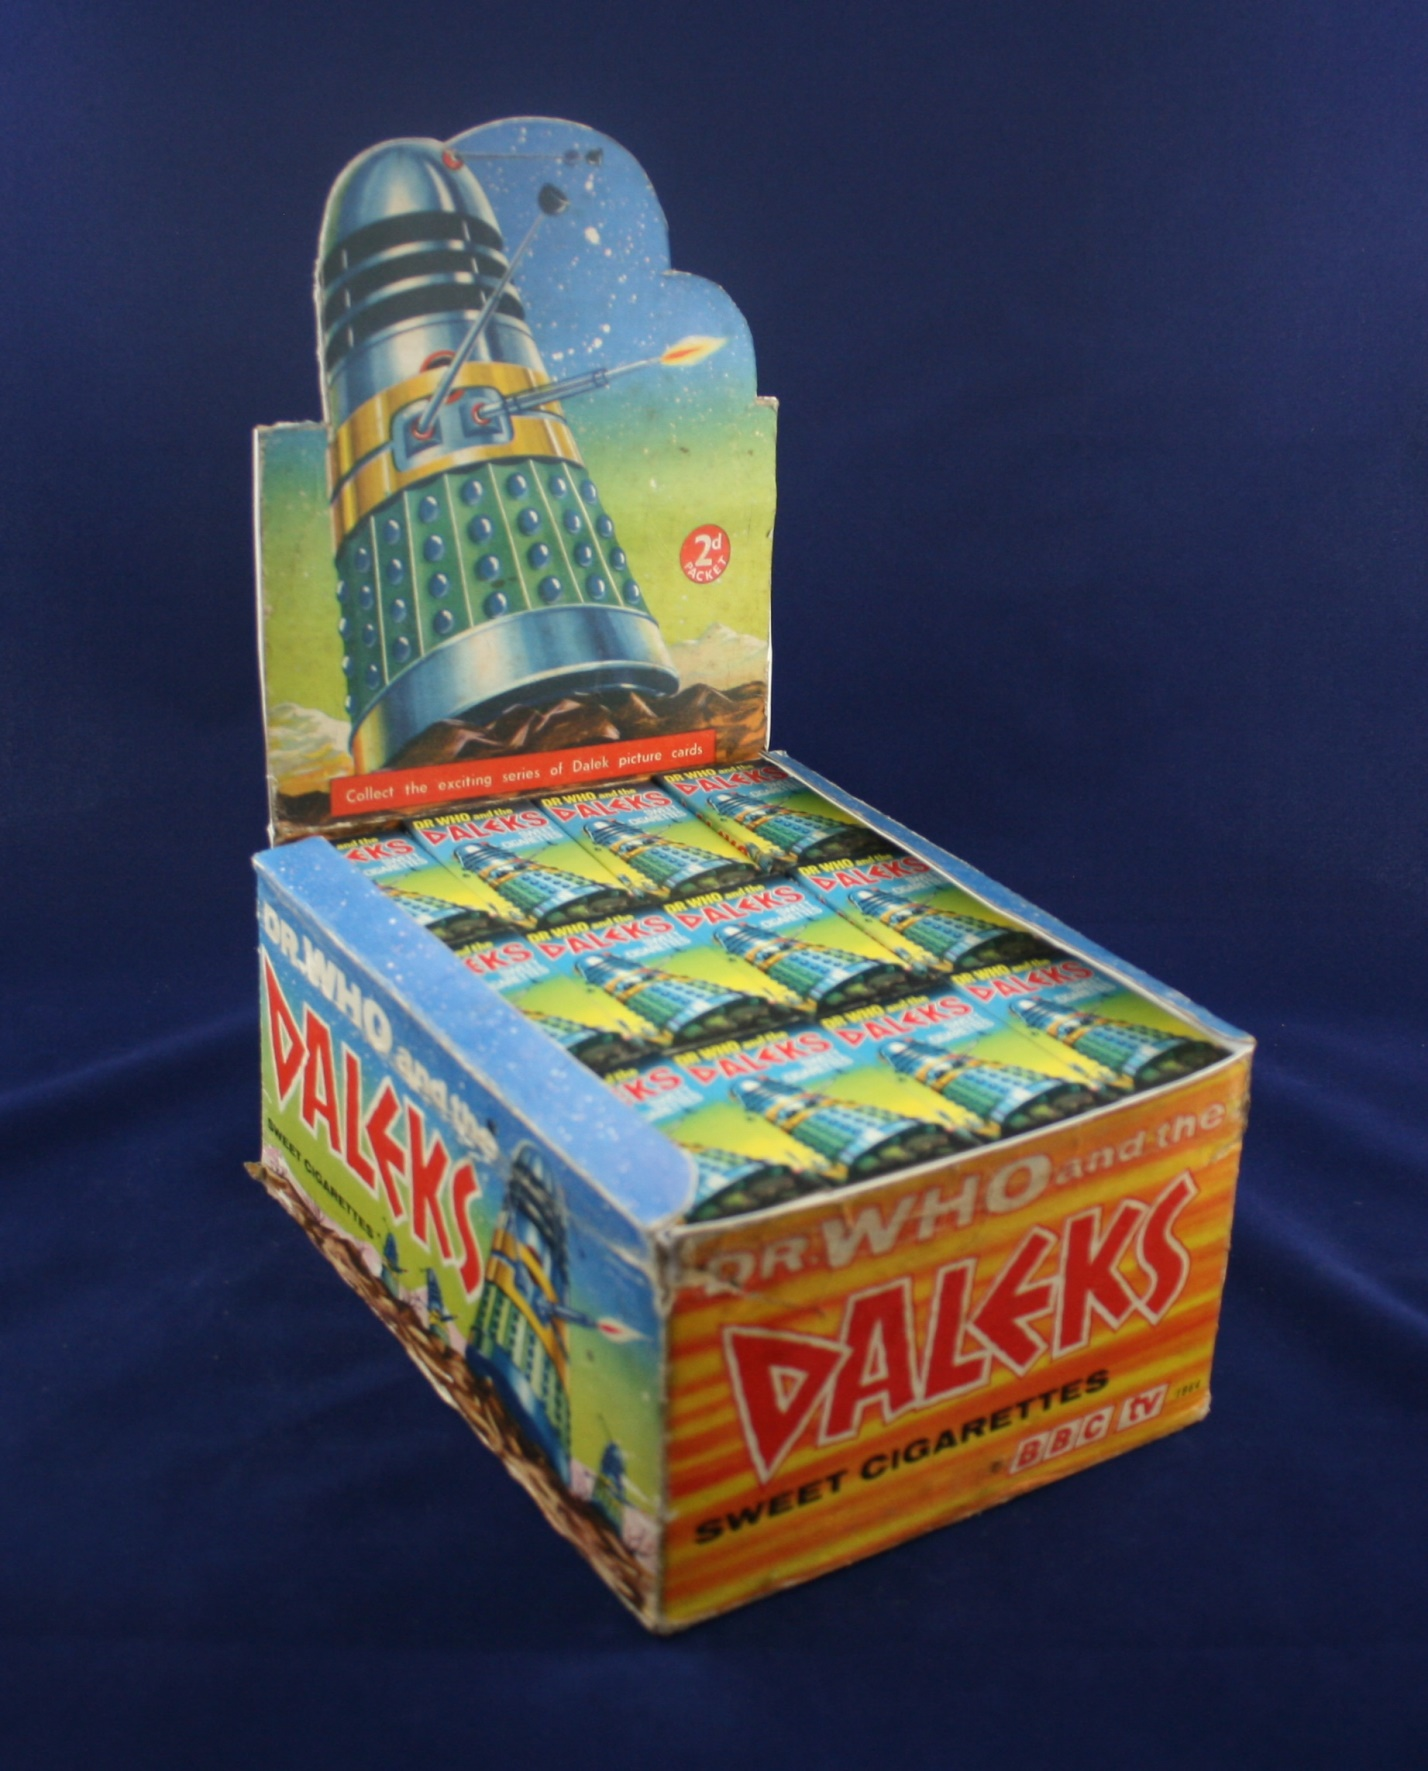 Cadet Sweets, Dr. Who and the Daleks Sweet Cigarettes, complete point-of-sale display box